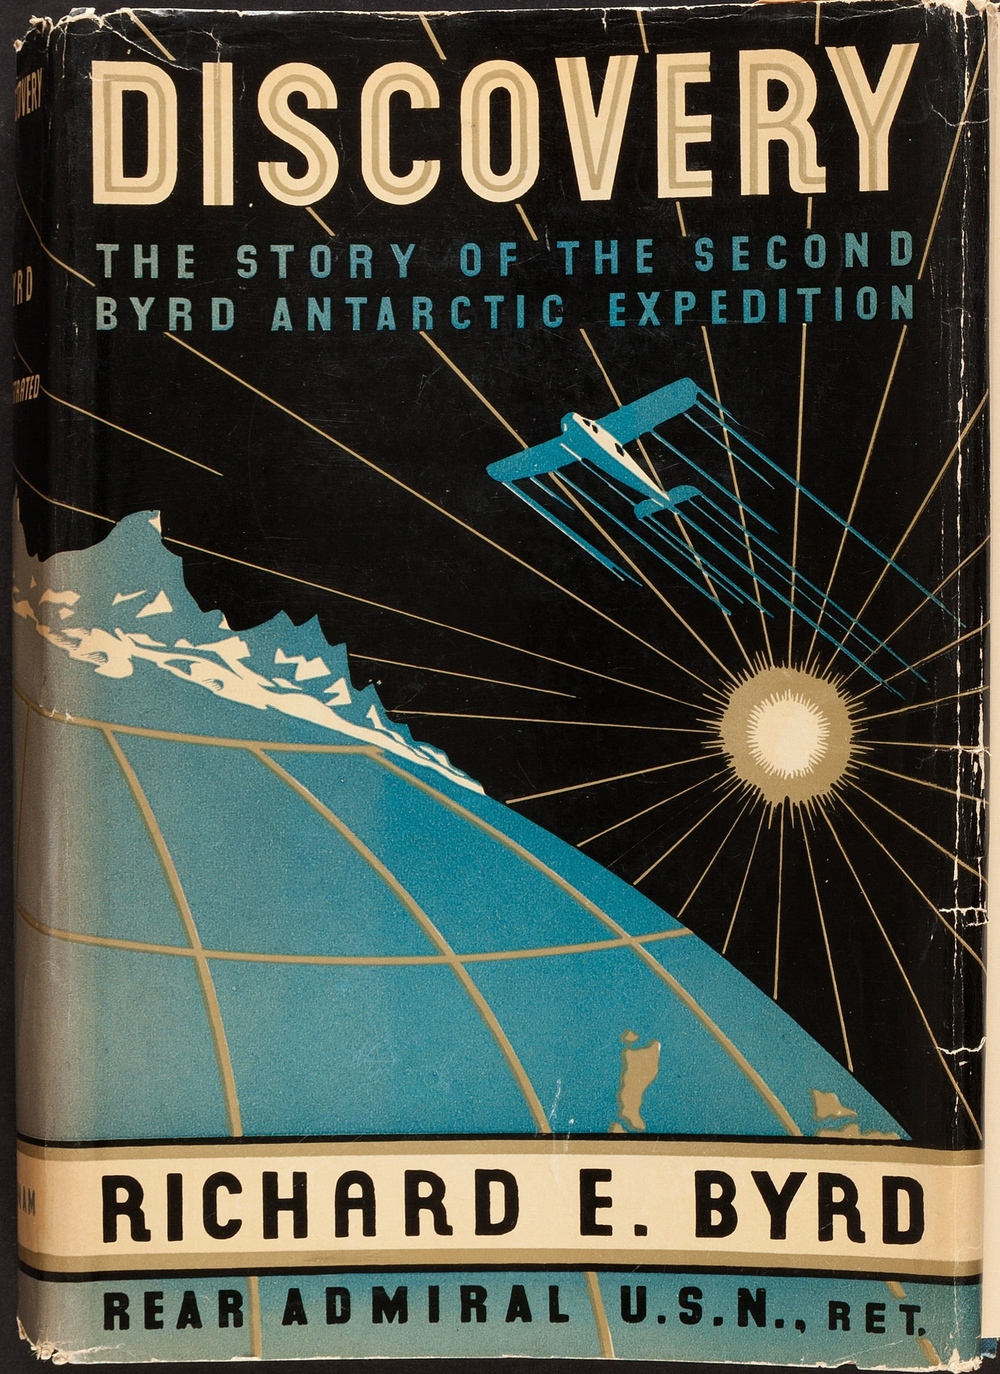 Richard Evelyn Byrd. Discovery. The Story of the Second Byrd Antarctic Expedition. New York: G. P. Putnam's Sons, 1935.